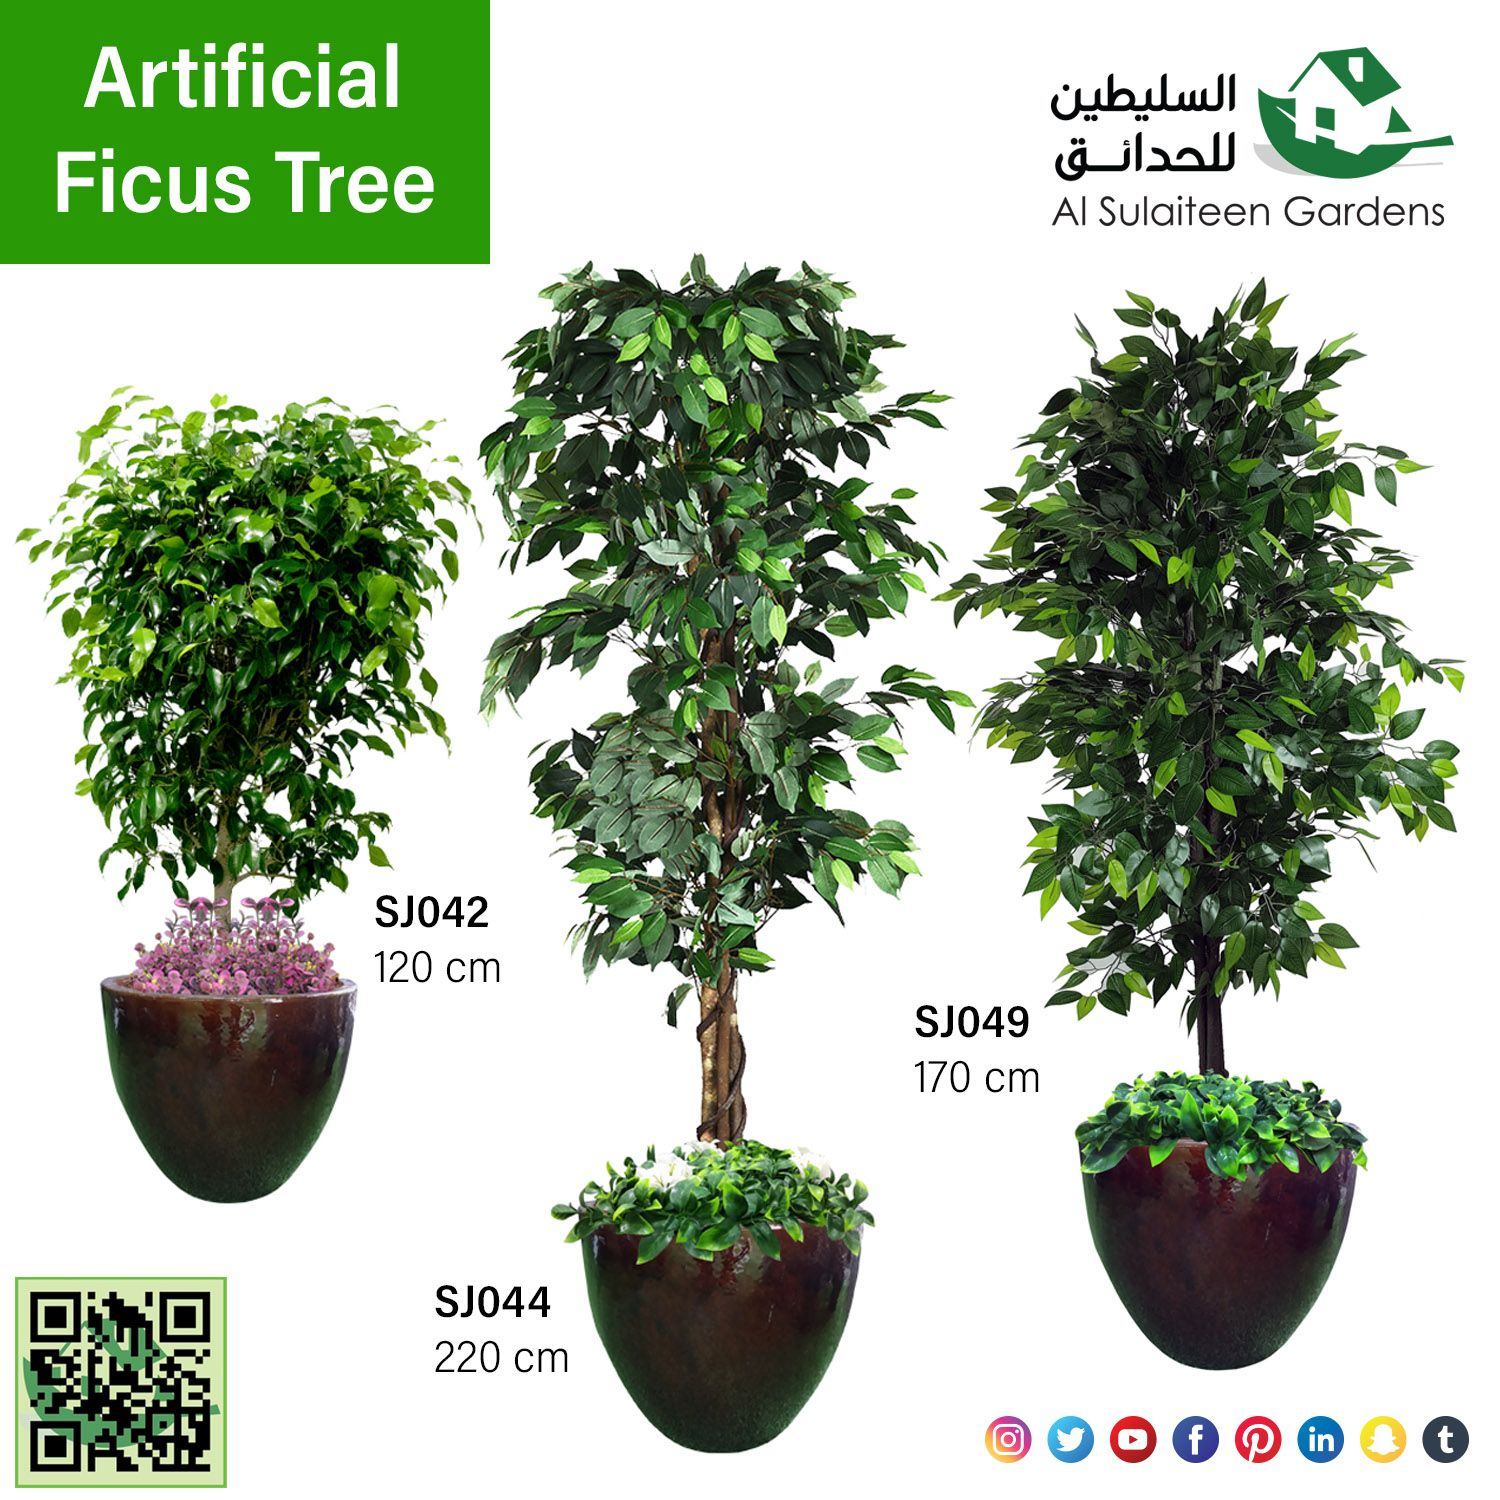 The Artificial Ficus Tree by Pure Garden is the perfect additional item for your home. Comes in 3 different sizes.   Get in touch with us @ 974-40292088 / 55831570/66616154  www.alsulaiteengardens.com #artificialplants #Ficus_tree #ArtificialFicus #granitefountains #Garden #Artificial_Garden #Qatar #Doha #Fountains #Artificial_GreenWall  #Artificial_Plants #plantingpots #Artificial_Grass #Garden_maintenance  #planterpot #Home  #artificialtrees #kidsplayequipment #stonesteps #plants  #Grass